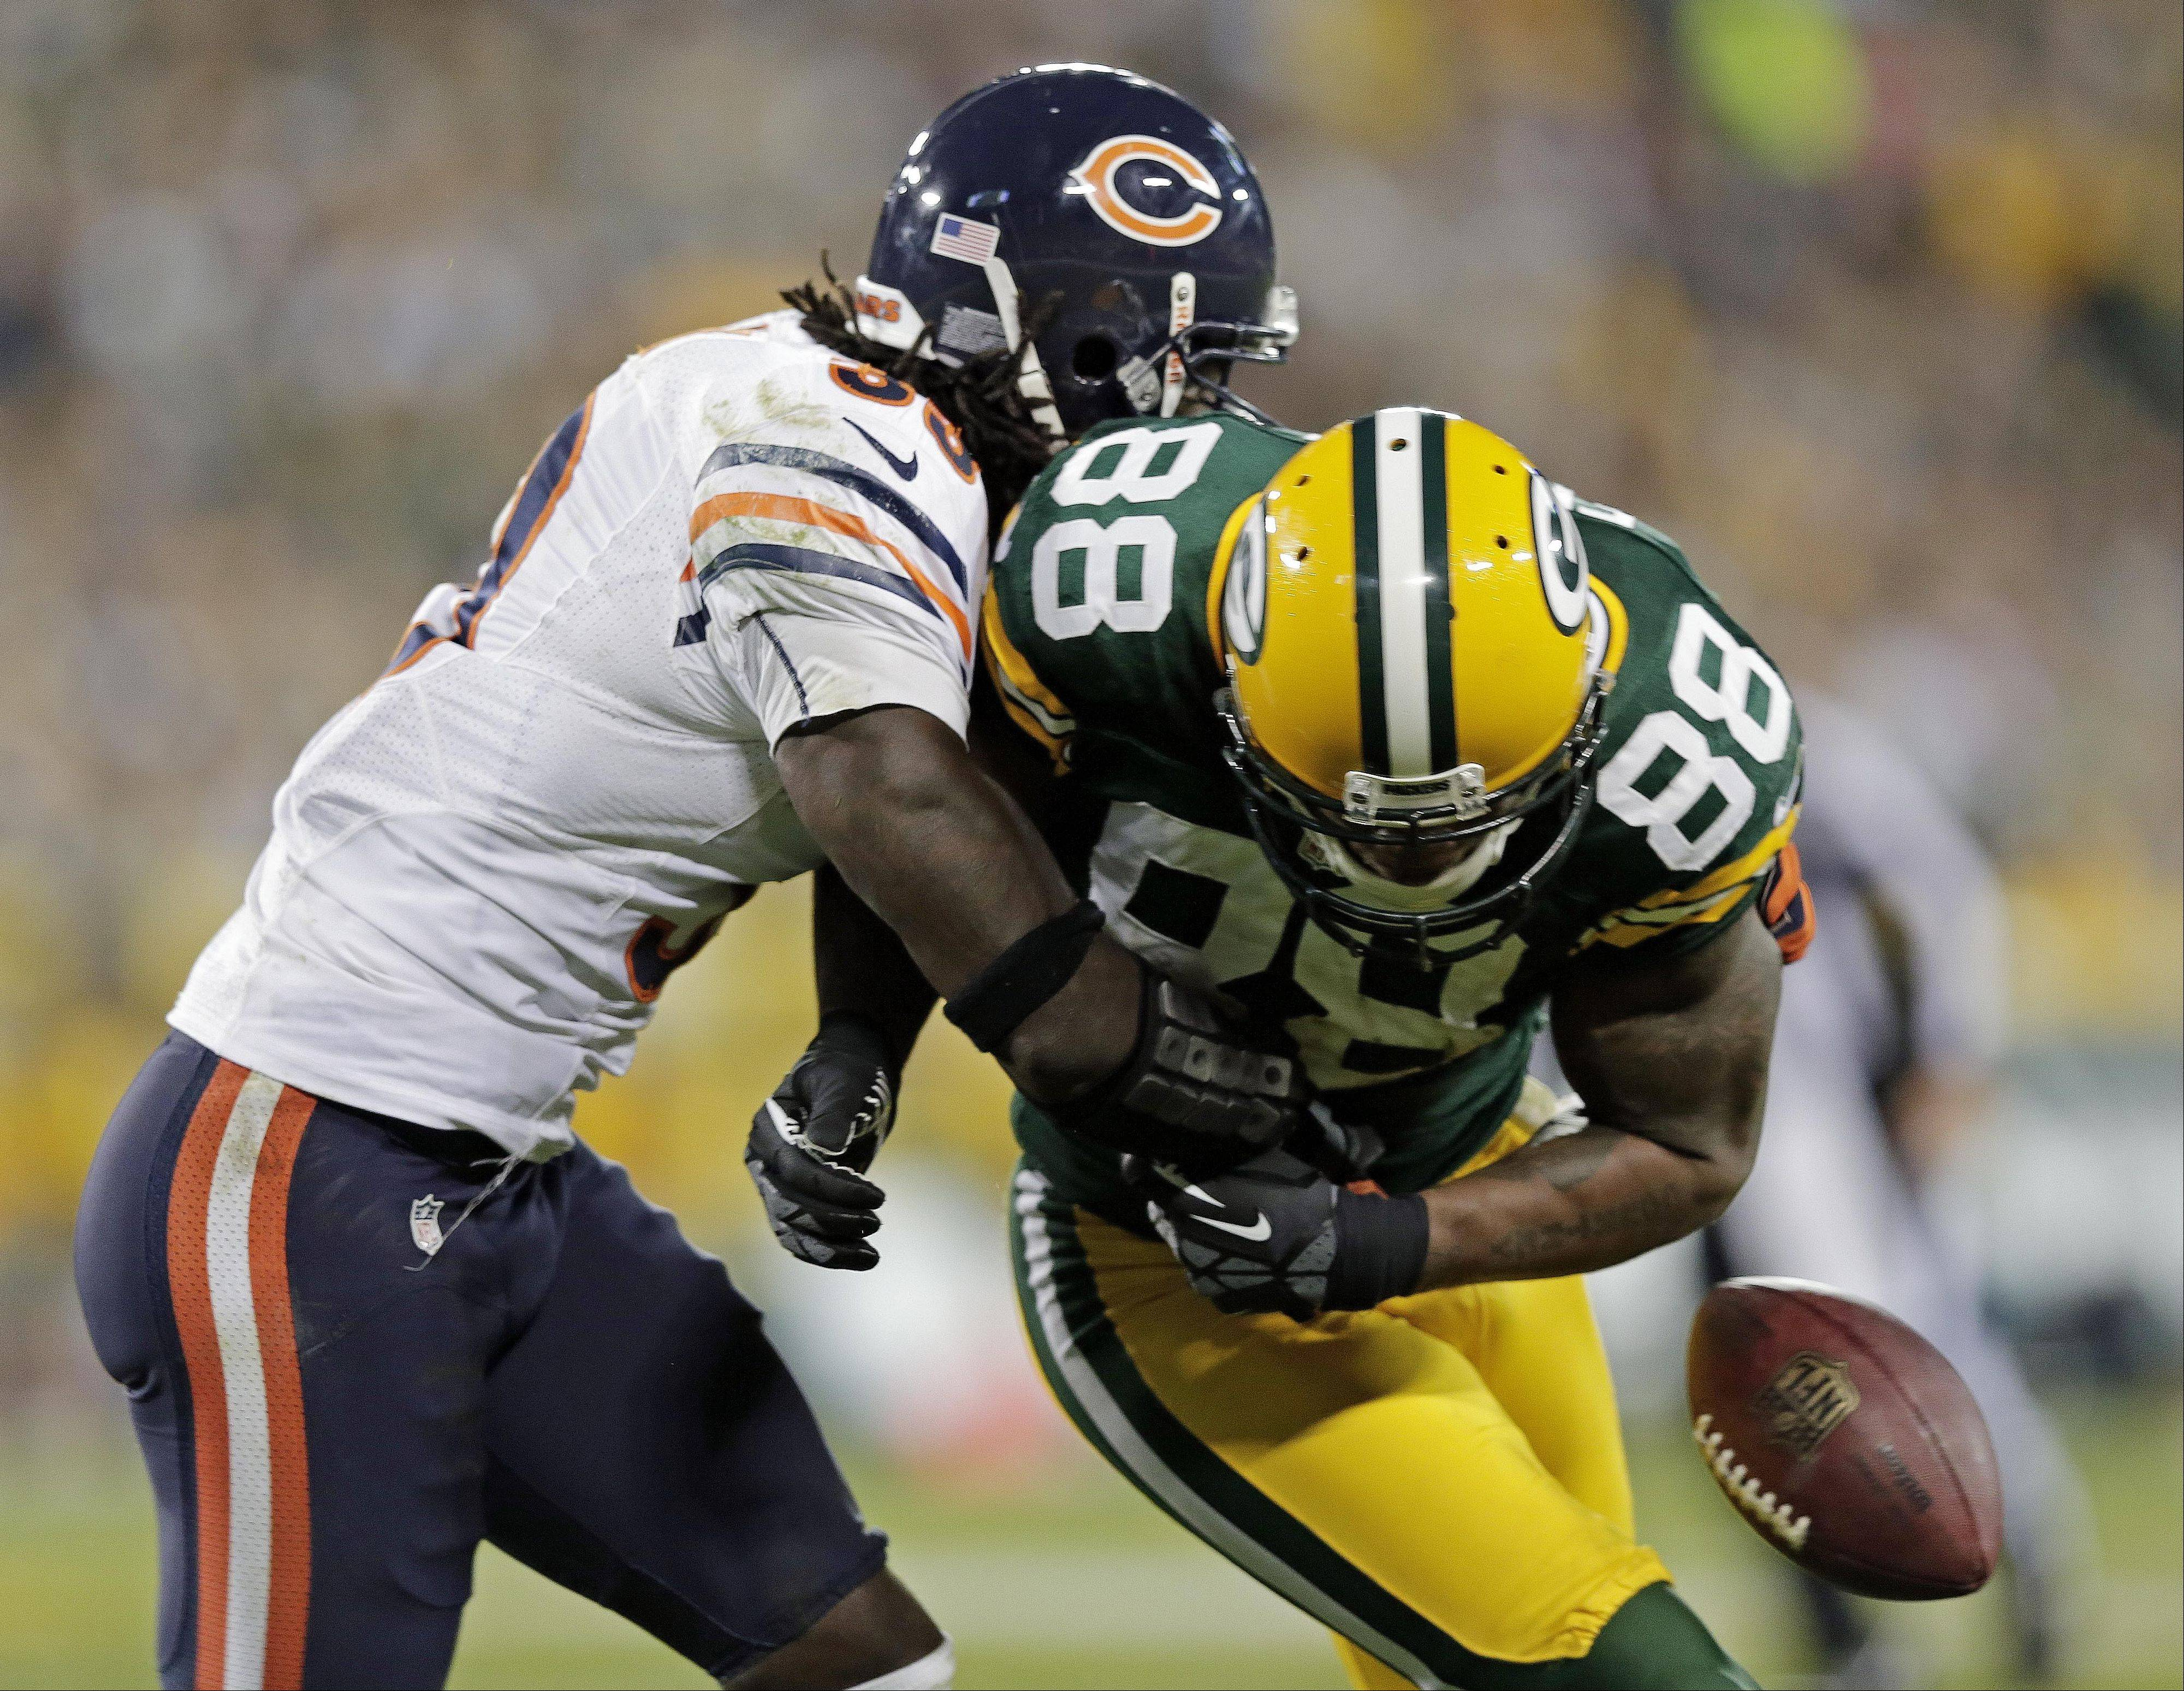 Green Bay Packers' Jermichael Finley (88) fumbles as he is hit by Chicago Bears' Charles Tillman (33) during the second half of an NFL football game Thursday, Sept. 13, 2012, in Green Bay, Wis. The Bears recovered the fumble.